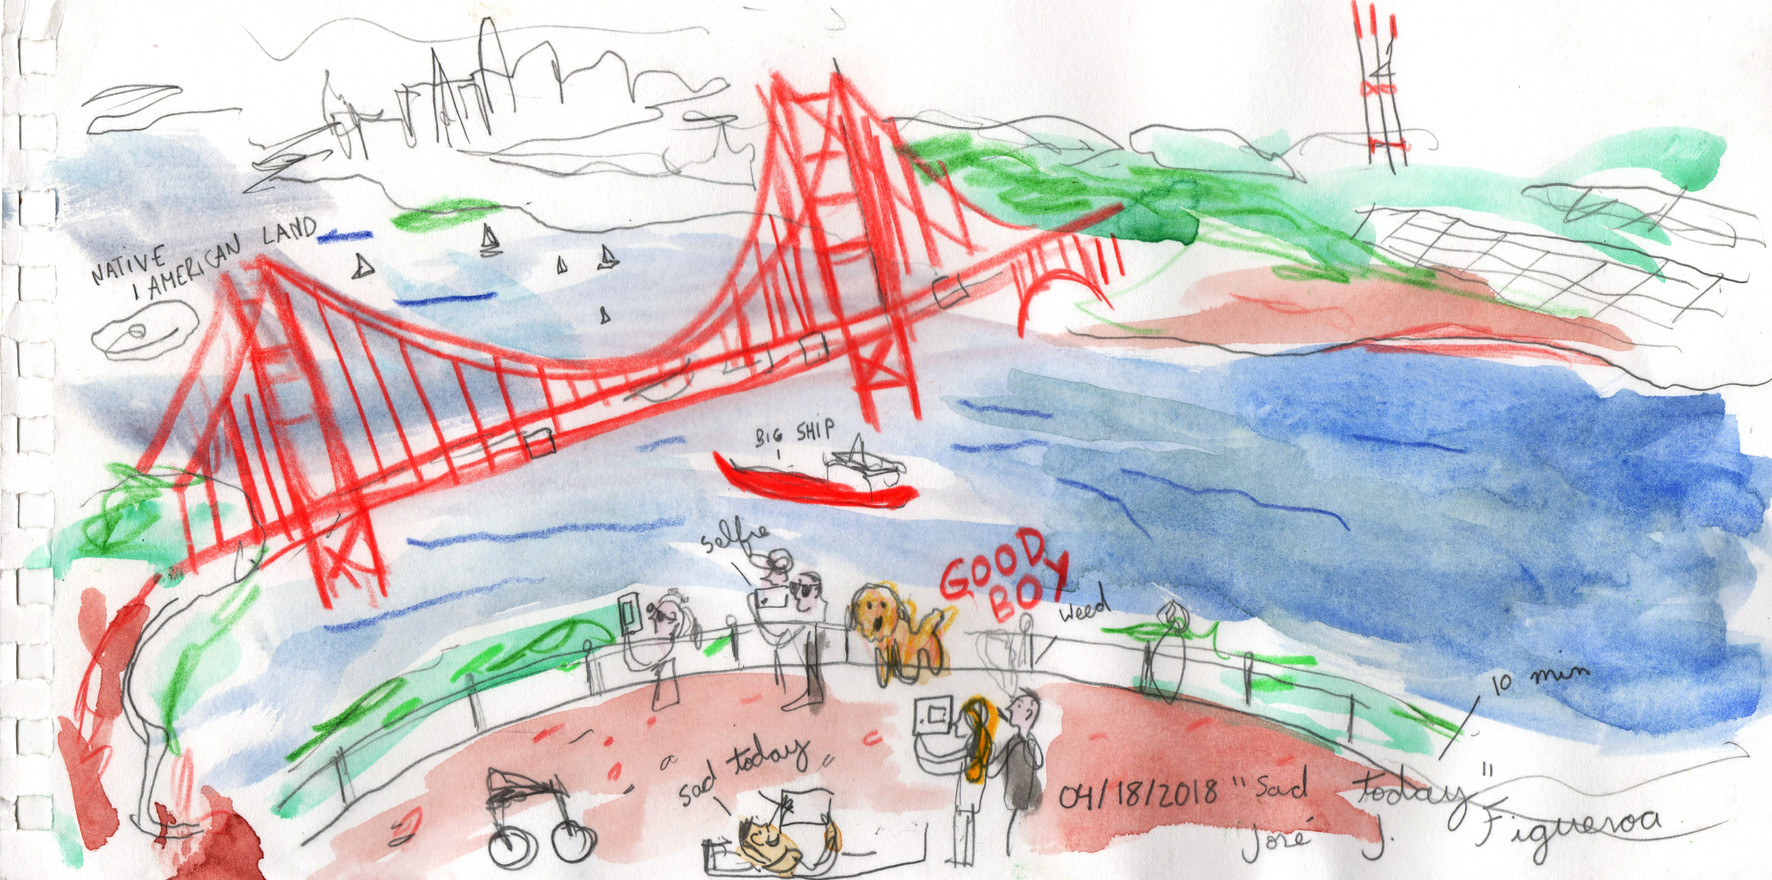 04-18-2018 sad today golden gate.jpg